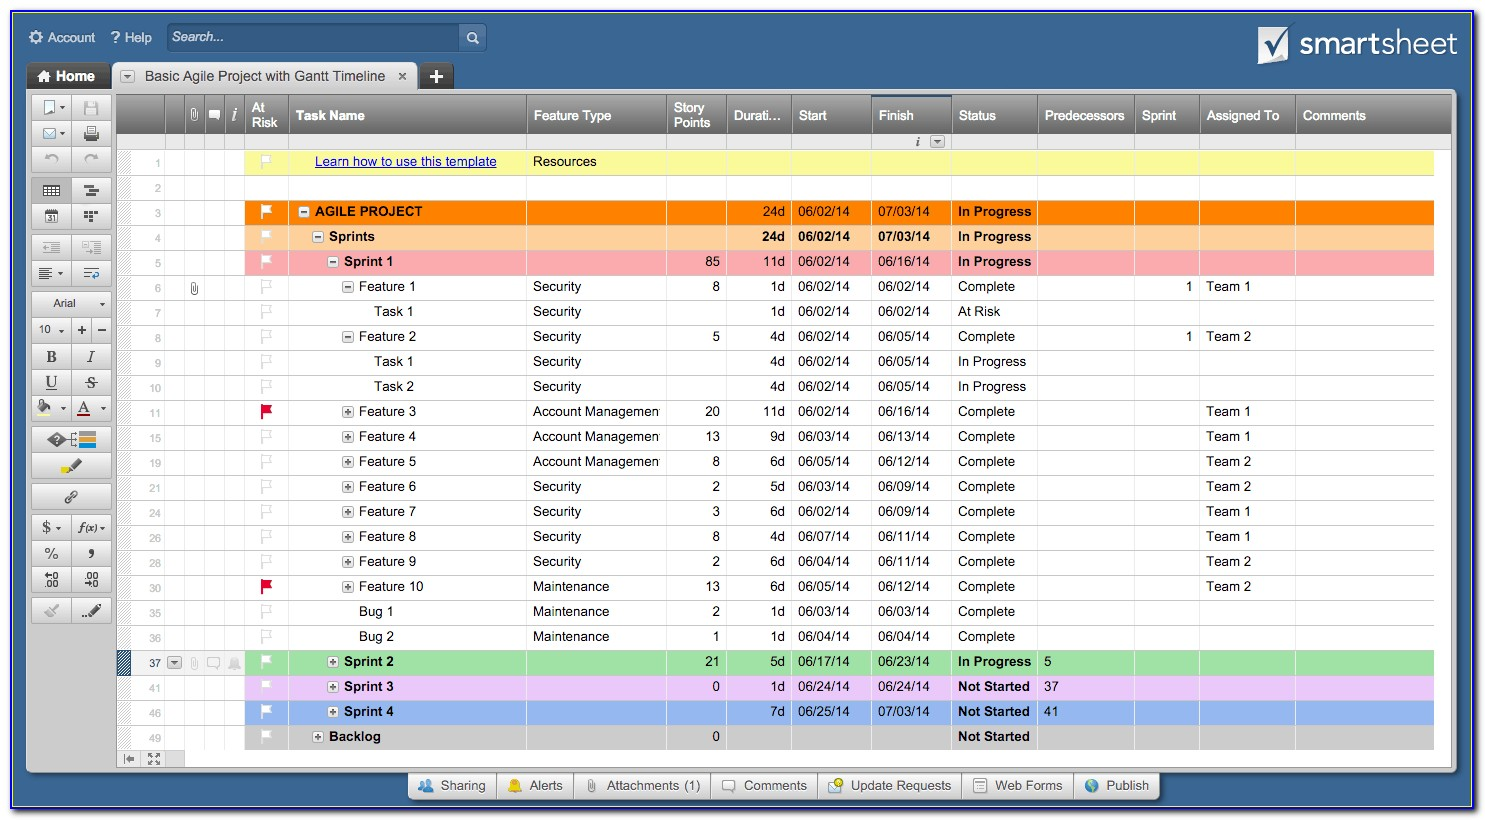 Excel Templates For Project Management And Tracking